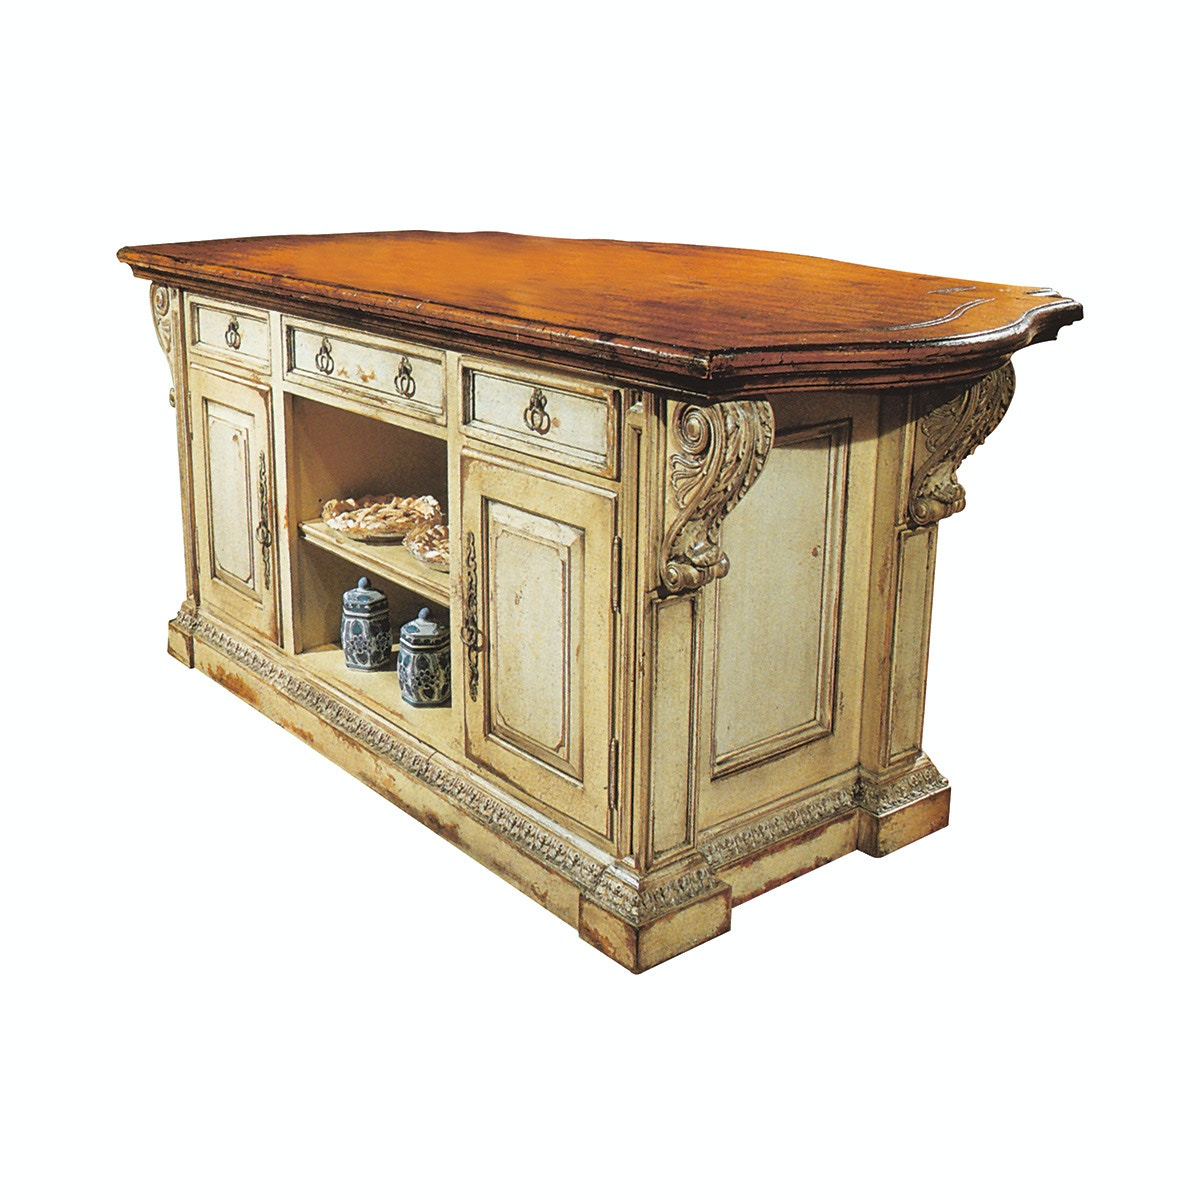 Ordinaire Habersham Plantation Corporation Chantepie Kitchen Island 48 Inches  37 3045 48 At Eastern Furniture